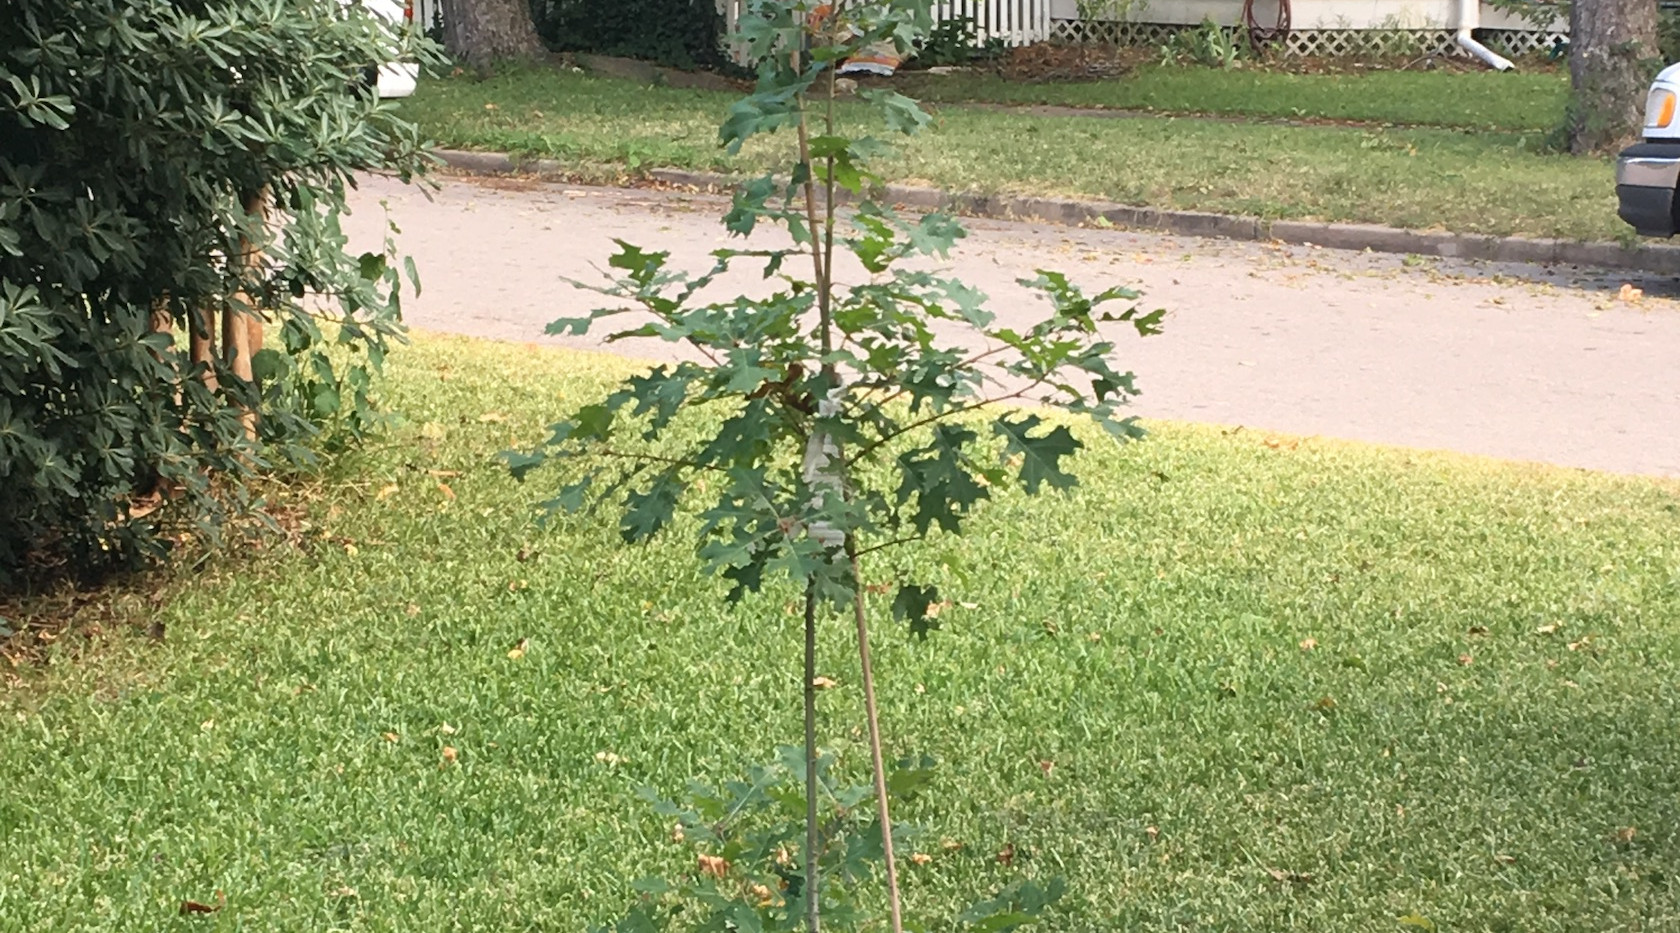 The littlest oak tree